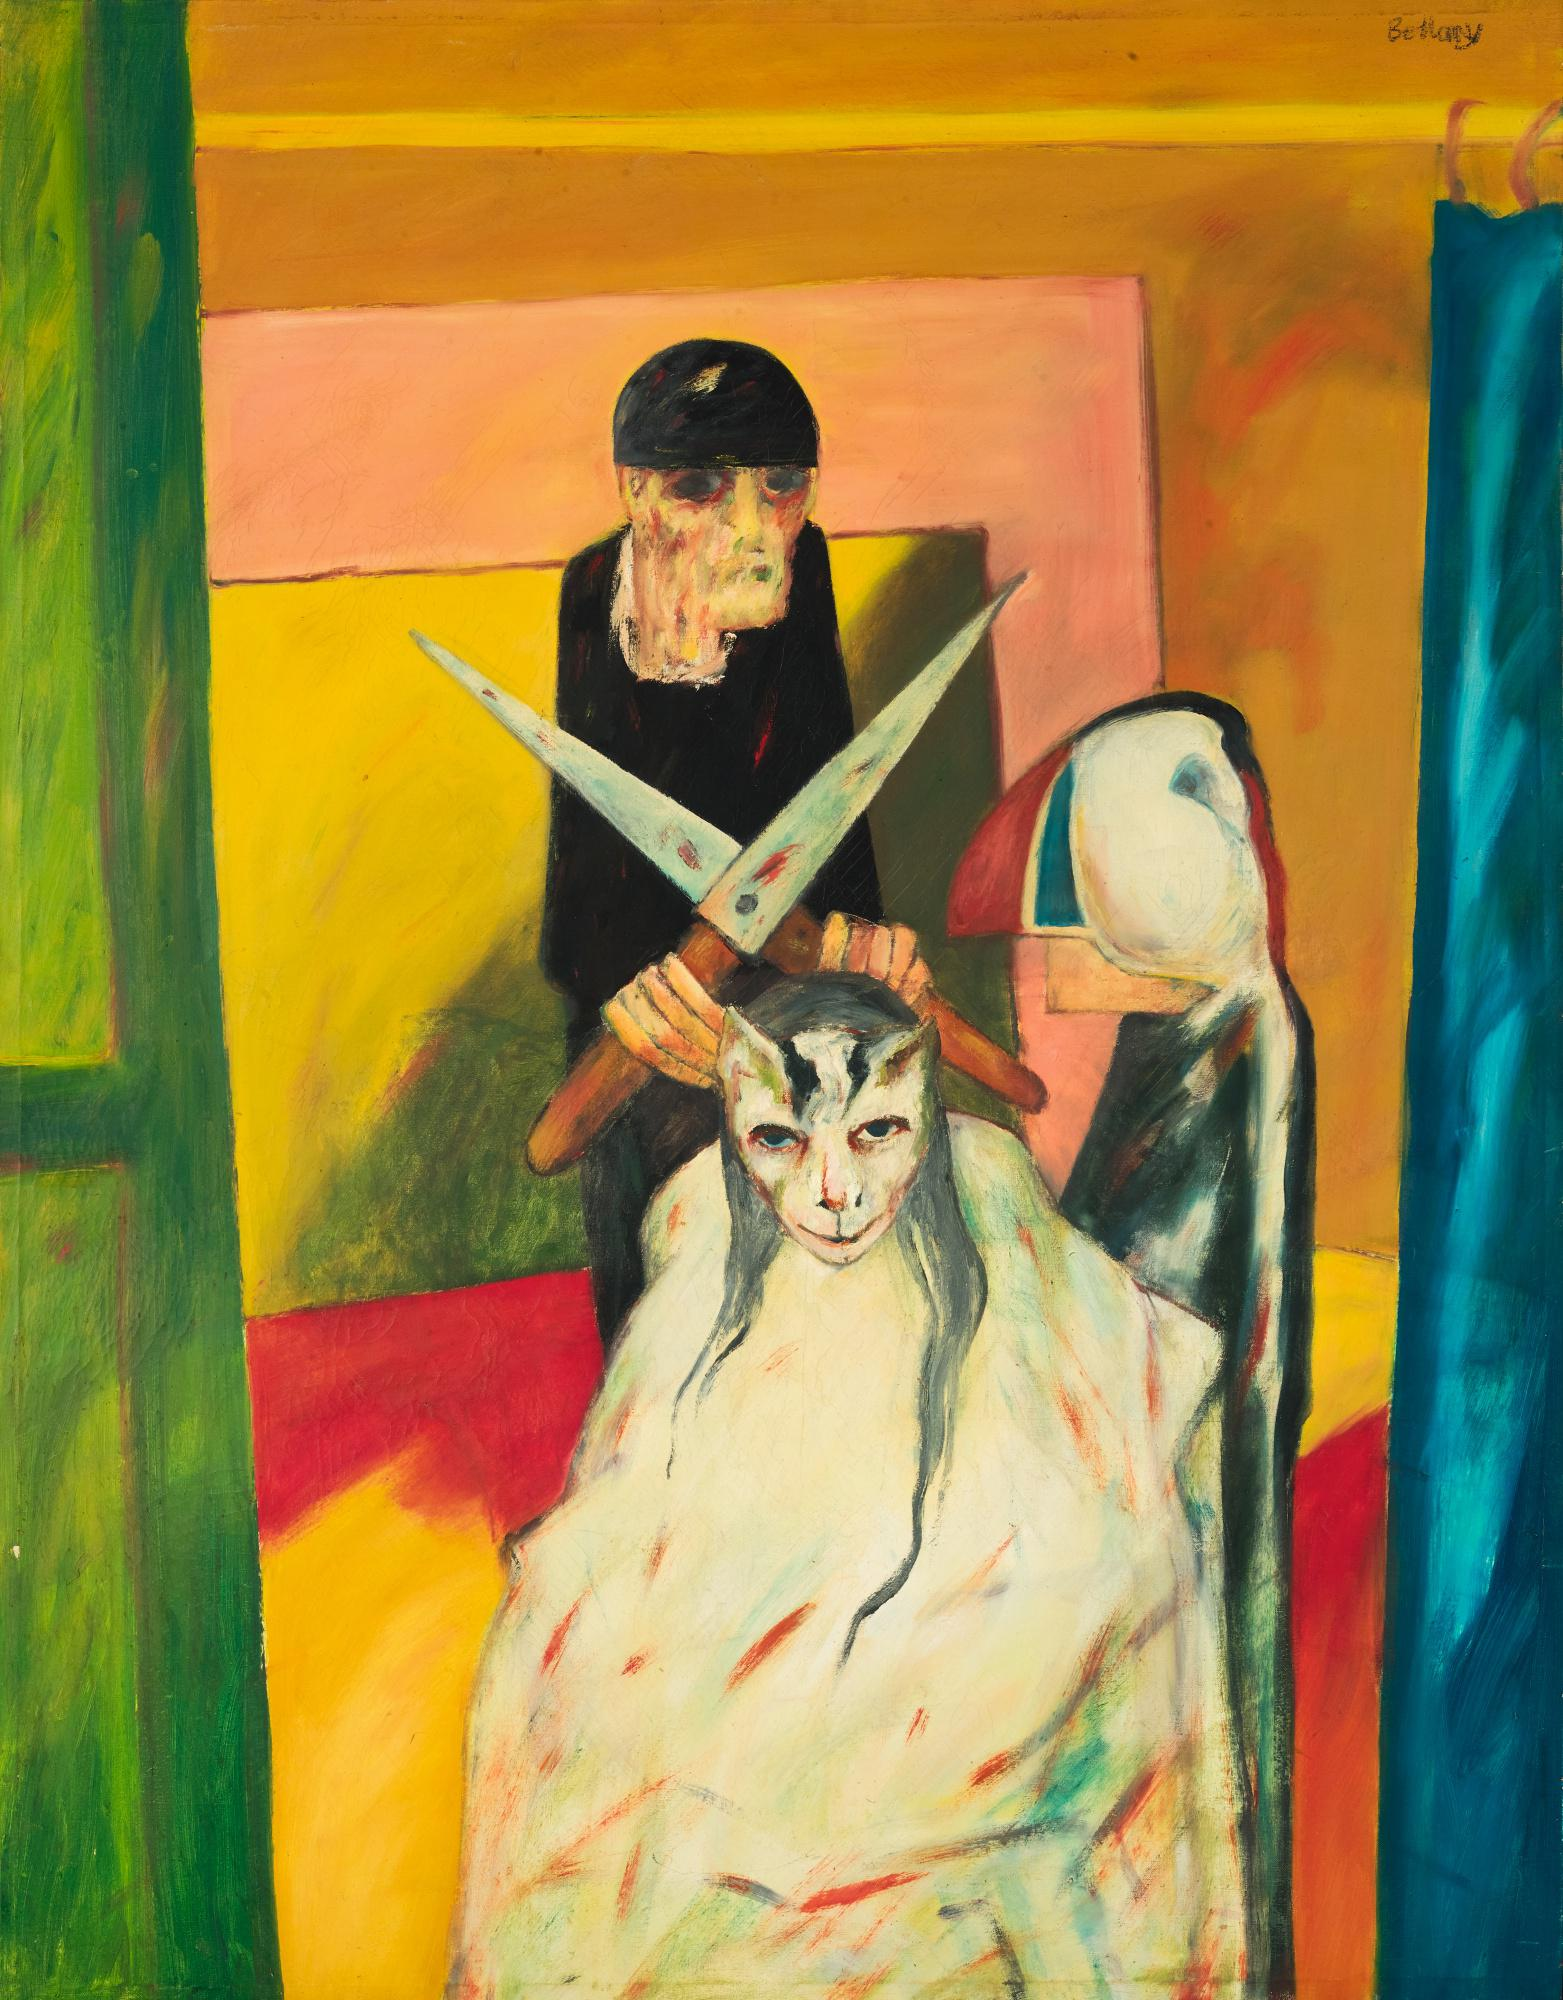 JOHN BELLANY, R.A. | HAUNTED FIGURE